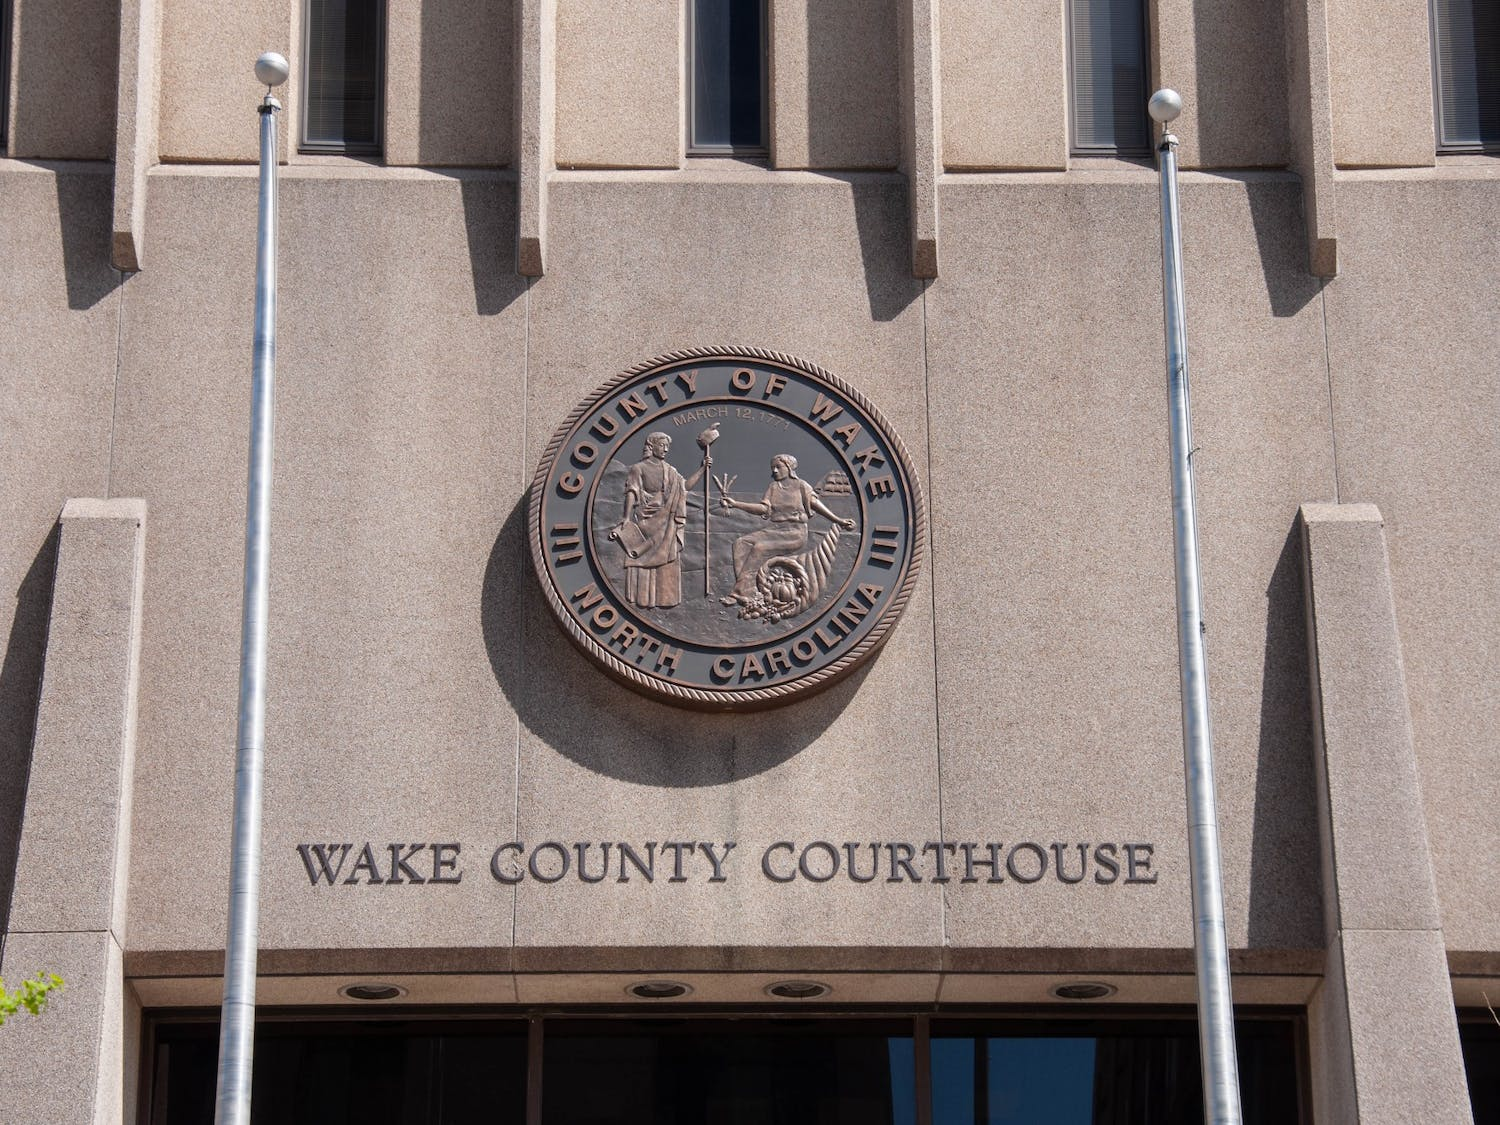 The Wake County Courthouse in downtown Raleigh, NC on April 4, 2021. A bill that was recently passed in the senate about raising the minimum age for juvenile delinquency from 6 to 10 now moves to the house.